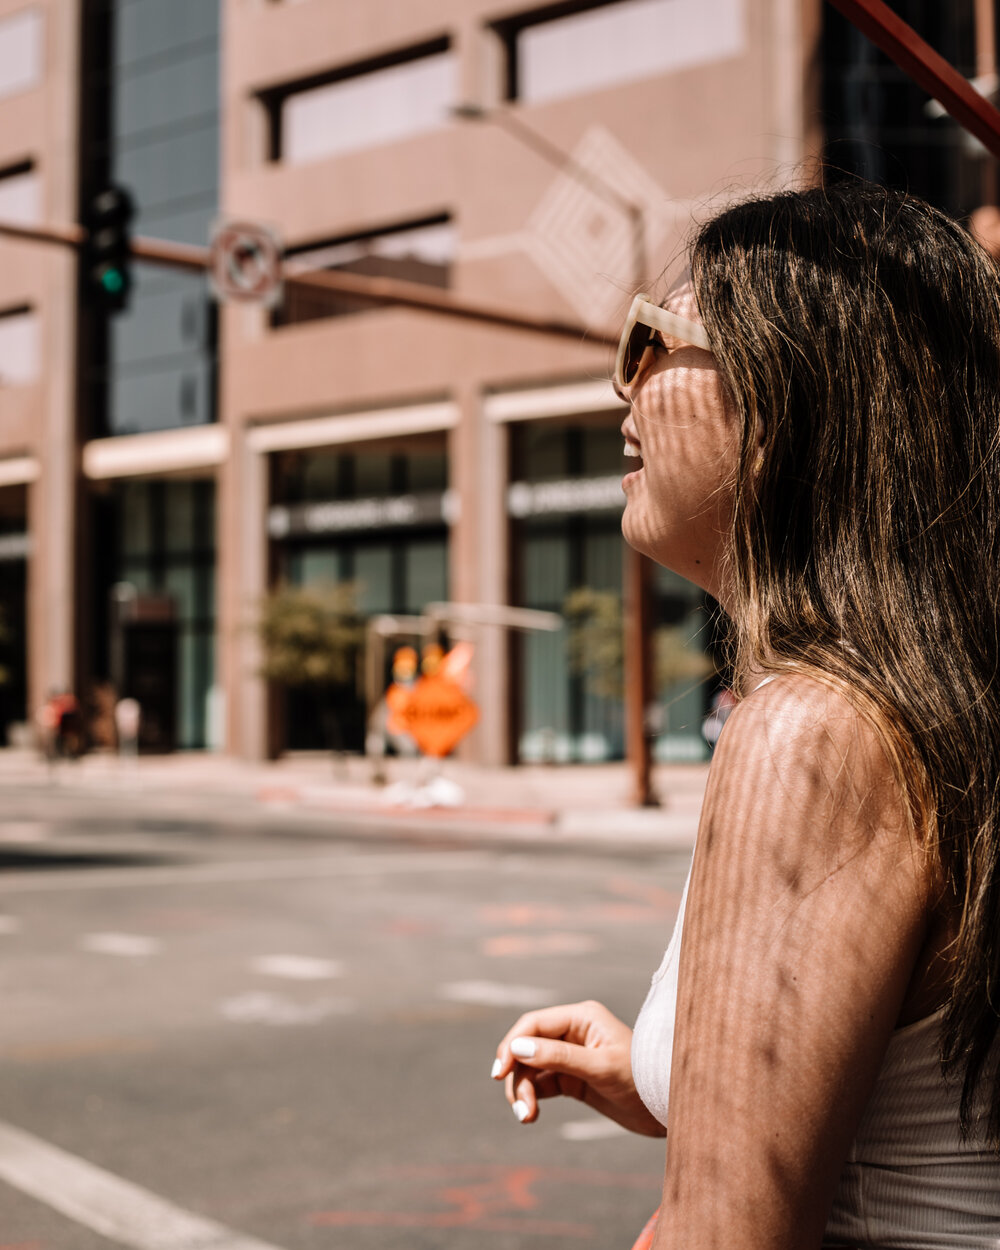 Rachel Off Duty: A Woman Laughing on a Pedicab Ride in Phoenix